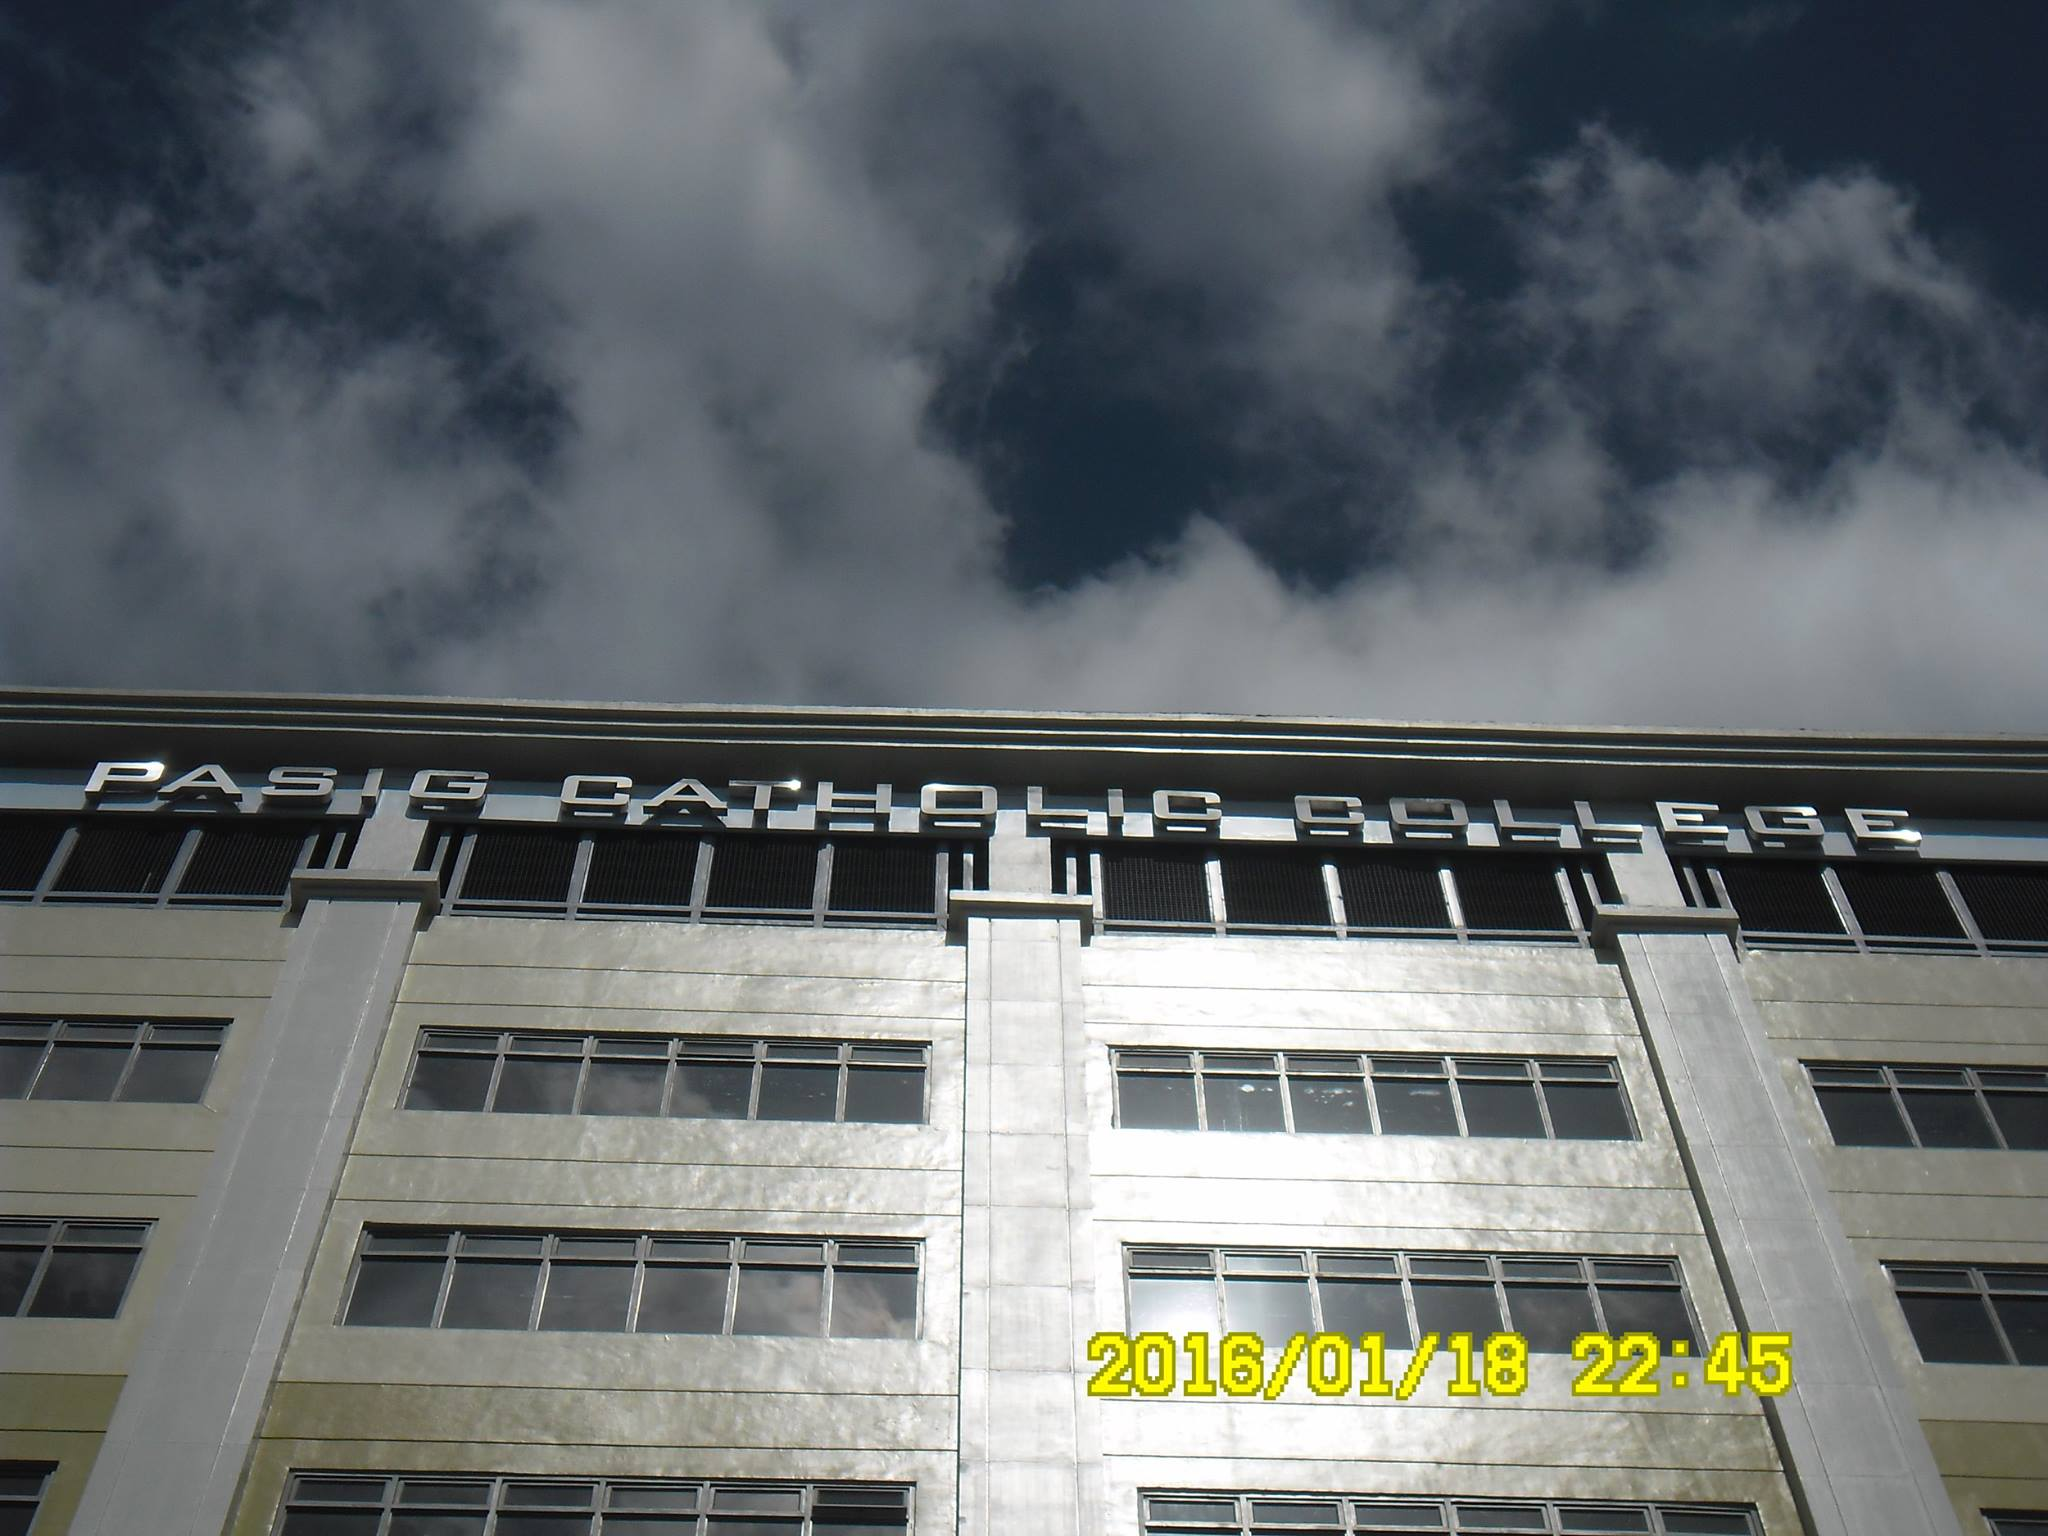 pasig-catholic-school-building-stainless-signage|stainless sign |signage maker